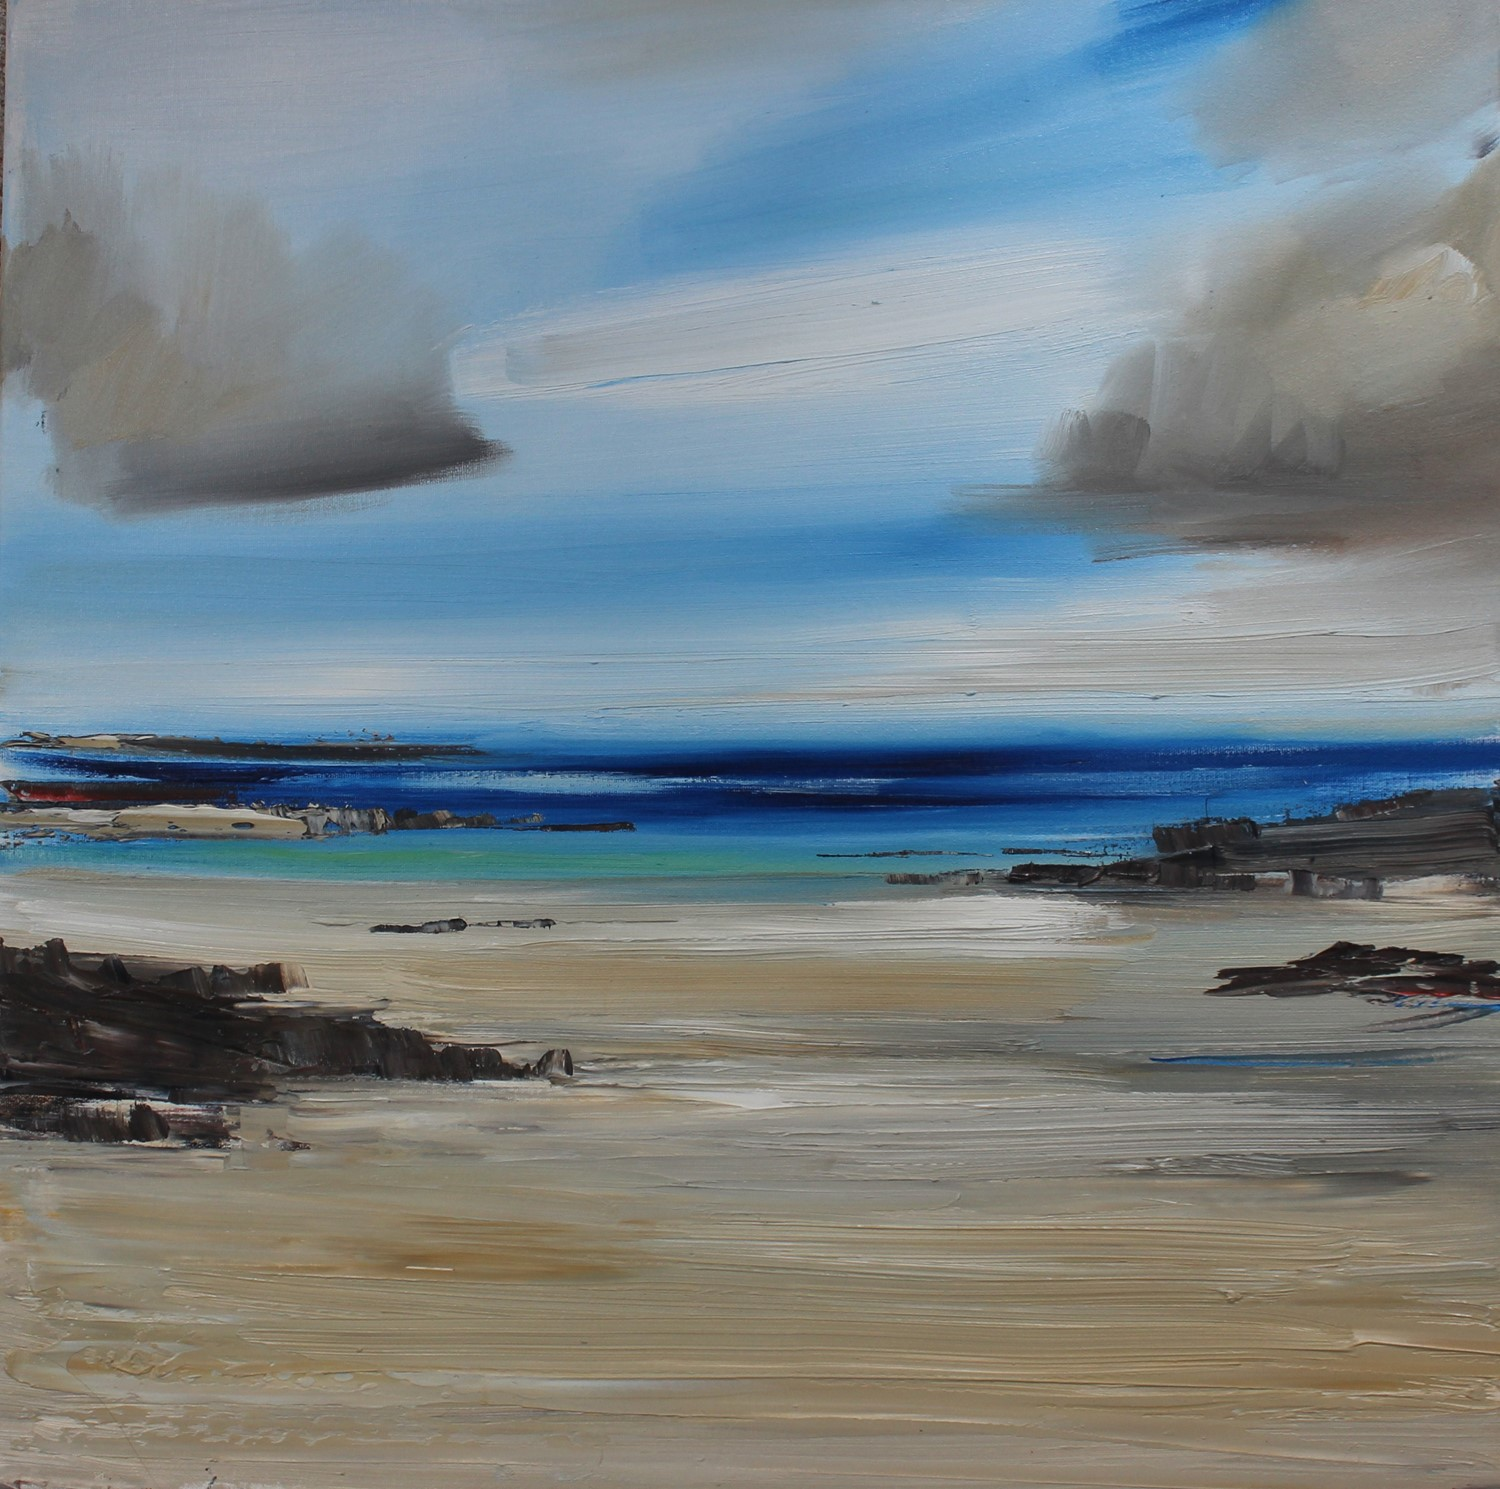 'The Silvery Sands' by artist Rosanne Barr